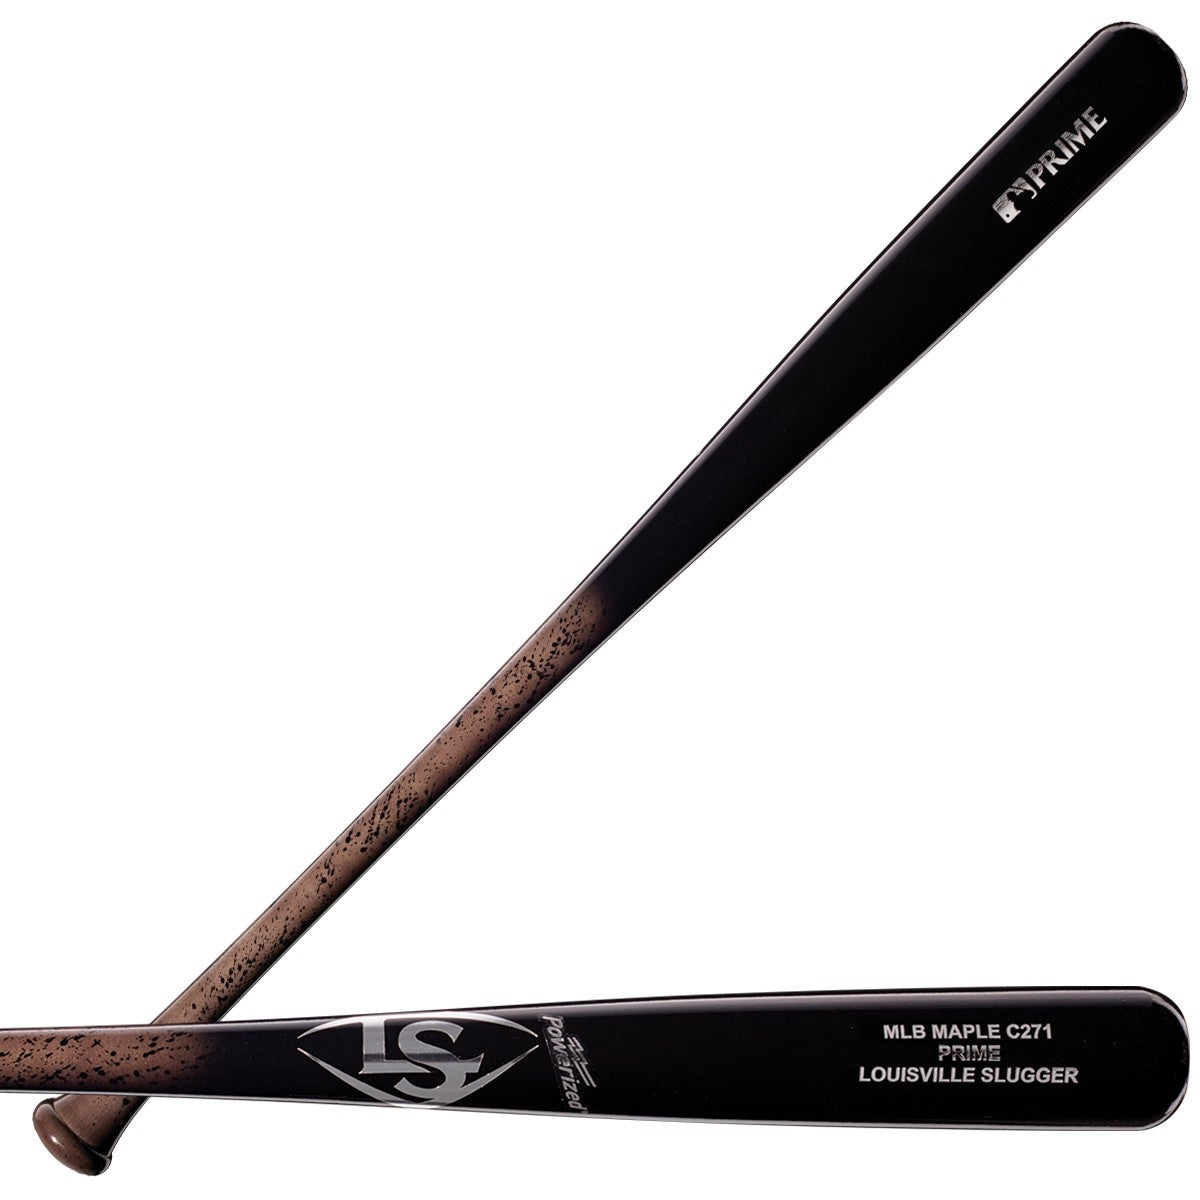 ? MLB Prime Maple C271 Miner Baseball Bat